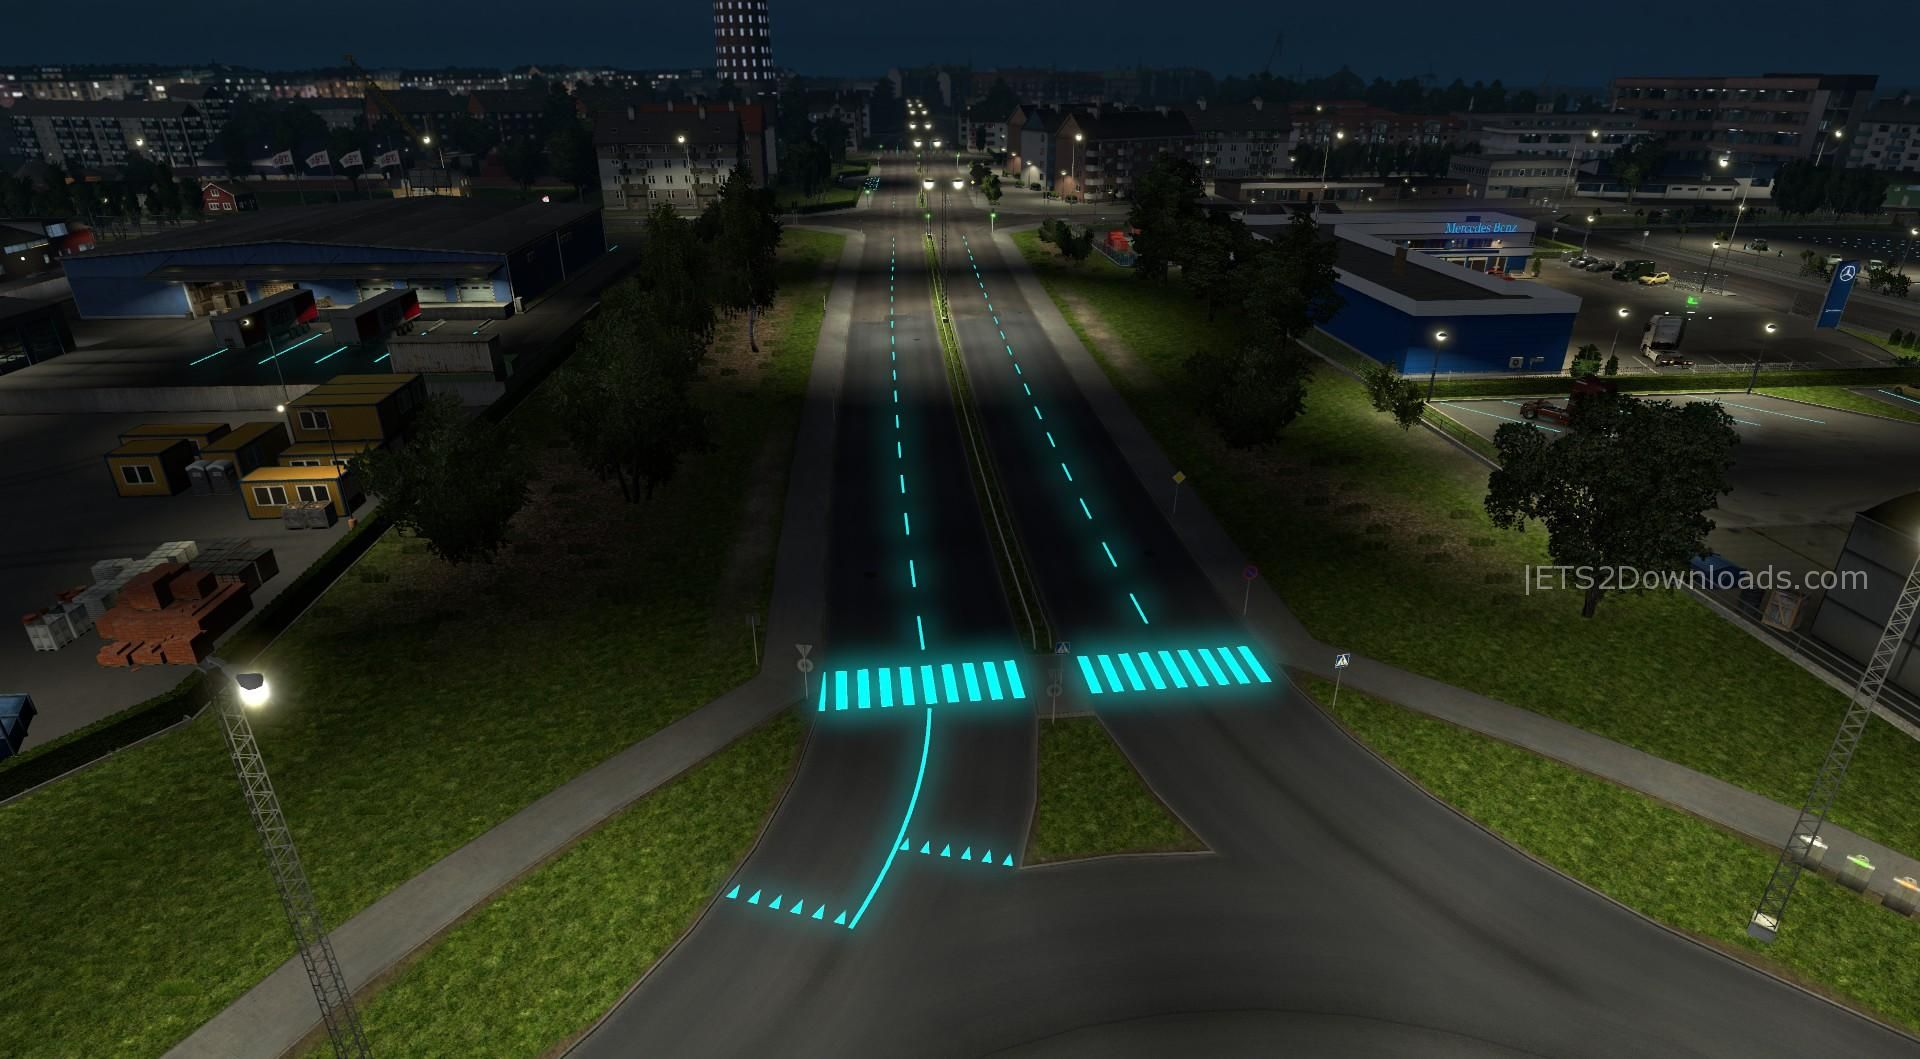 roadways-luminous-3